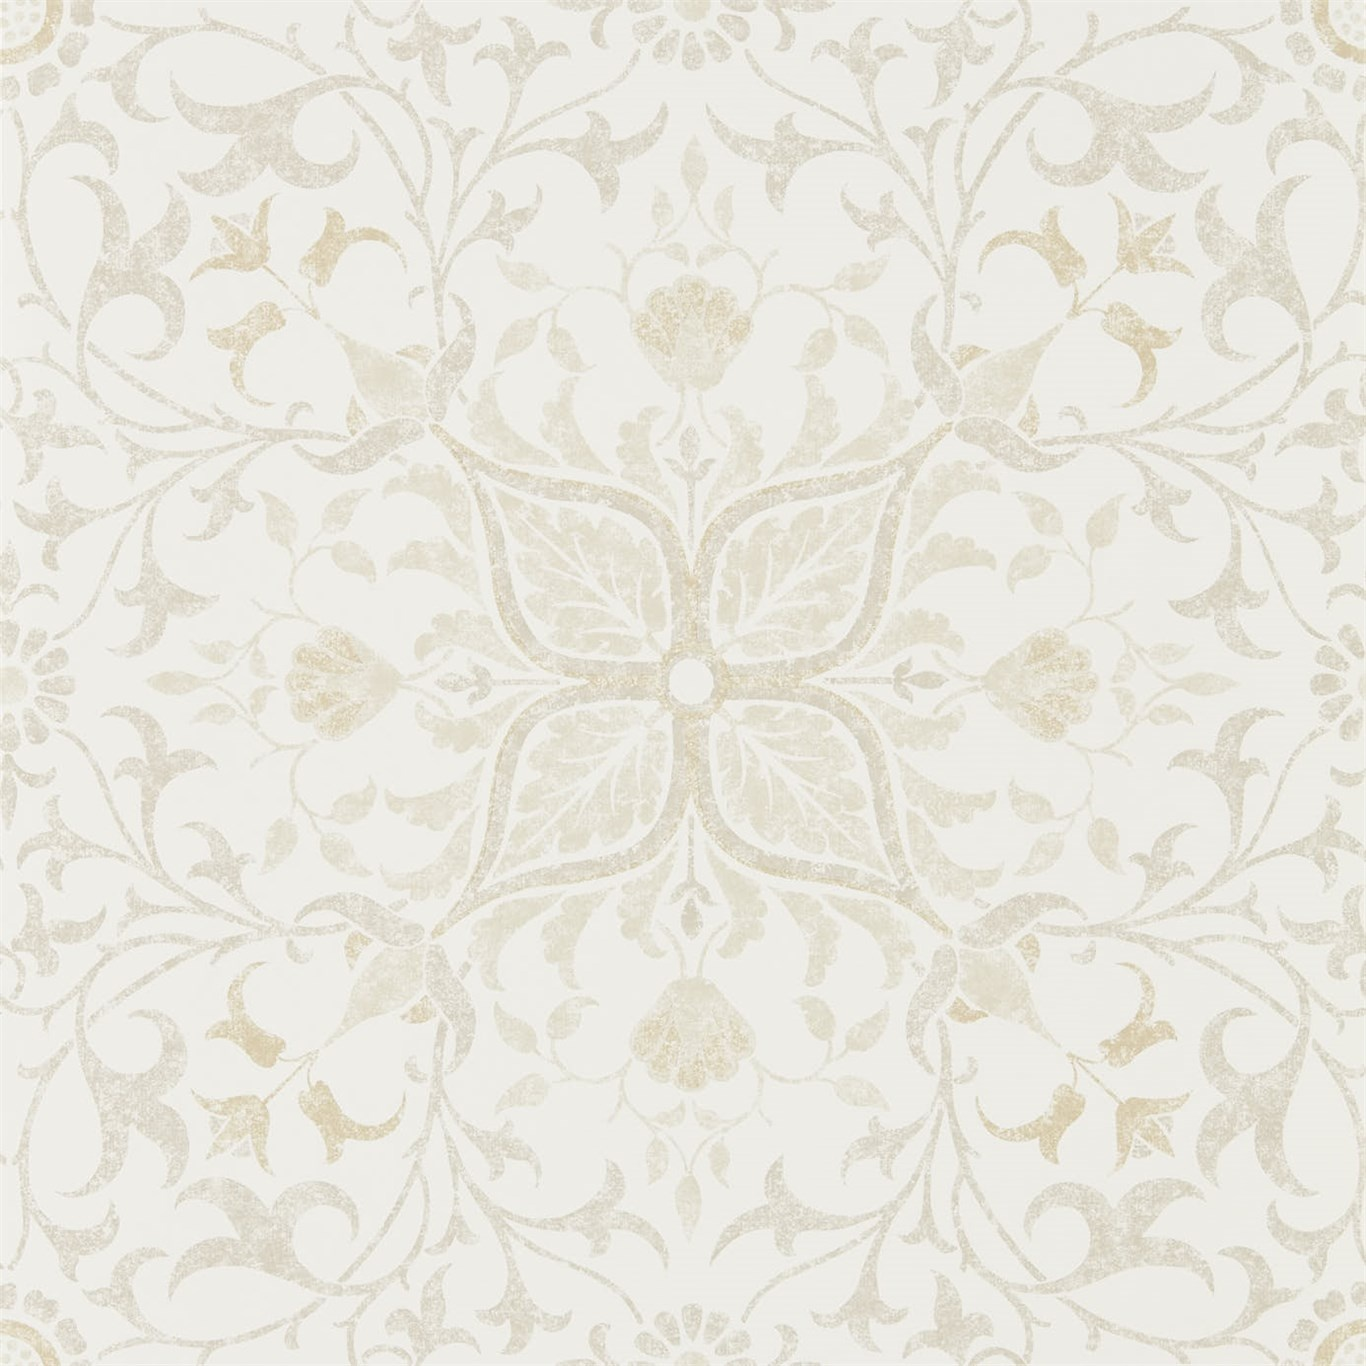 Image of Morris & Co Pure Net Ceiling Ecru/Linen Wallpaper 216039